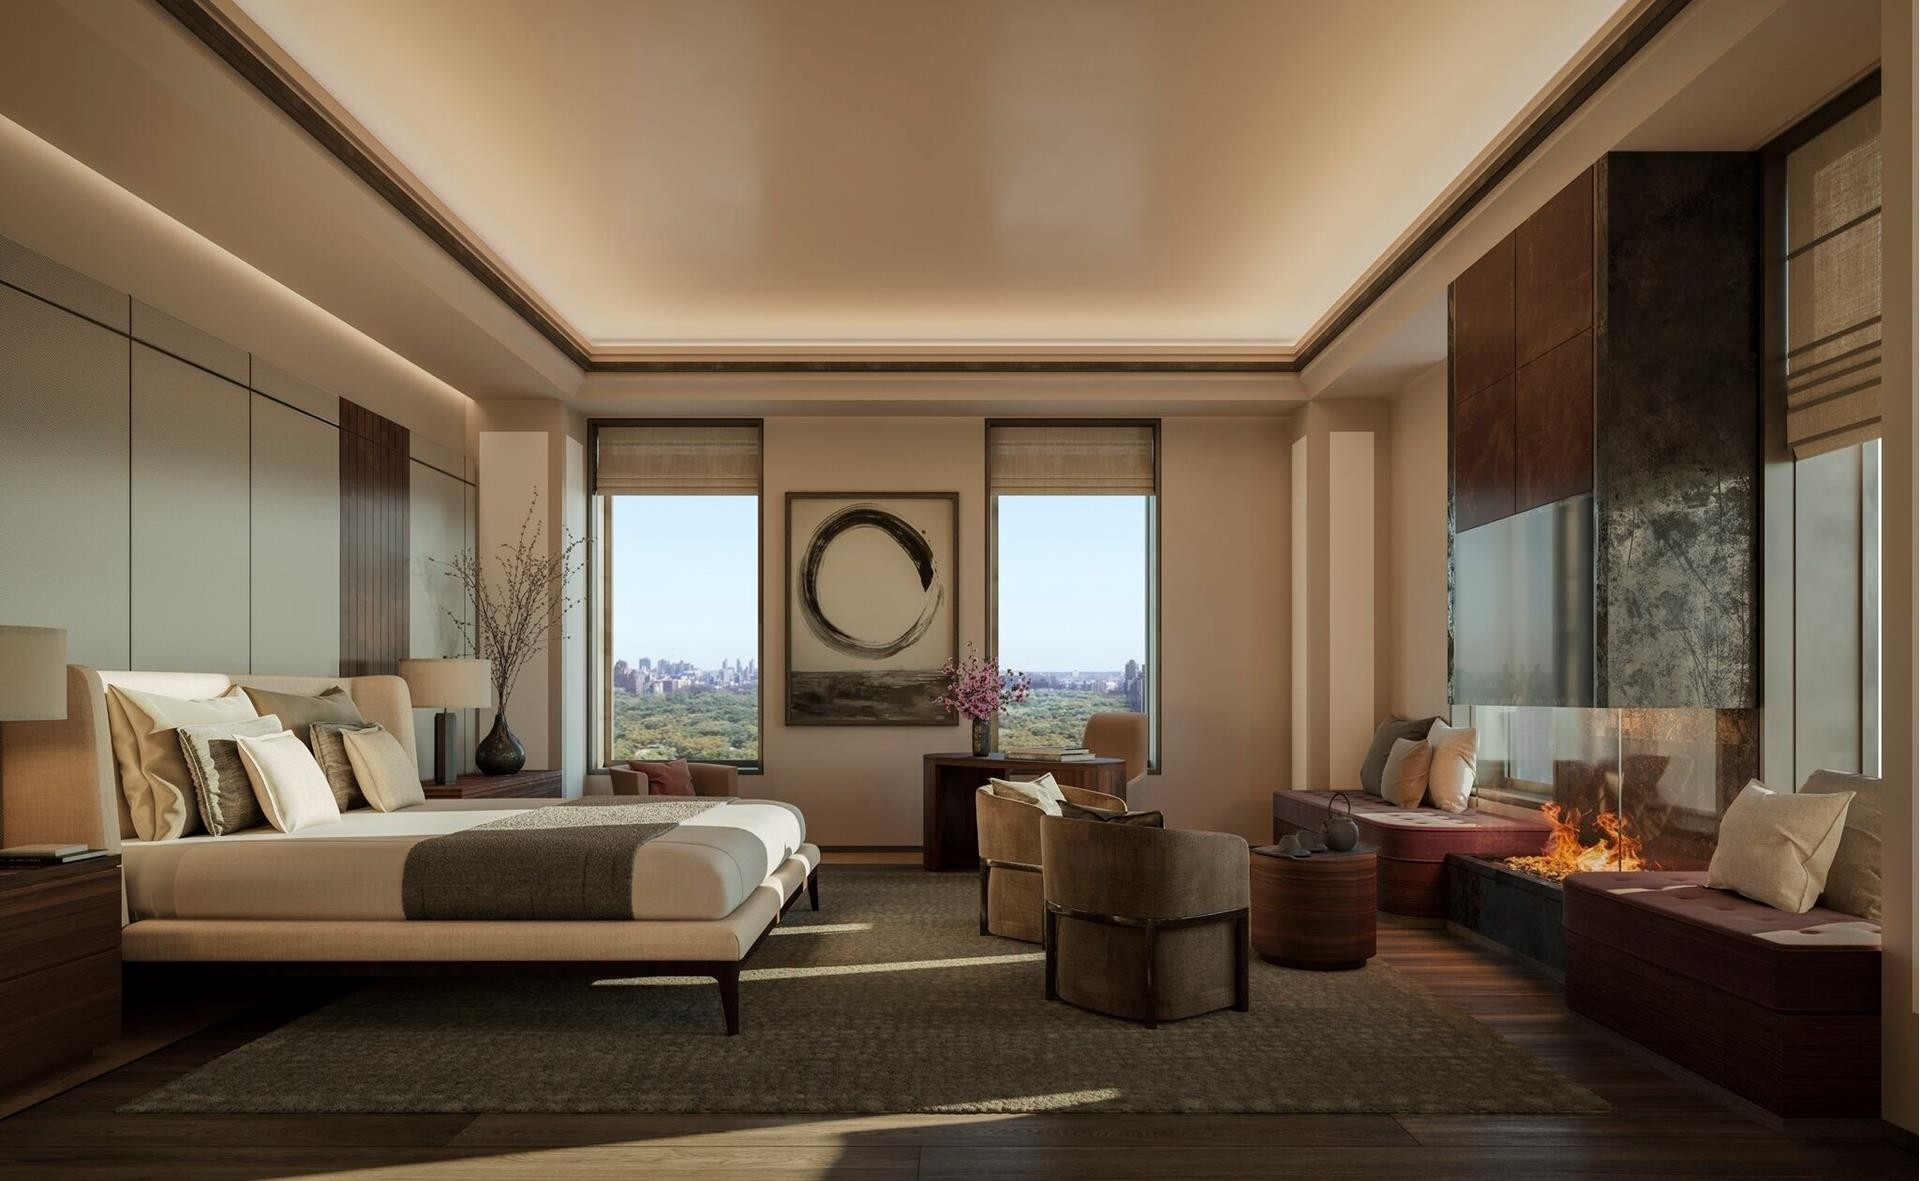 3. Condominiums for Sale at Aman NY Residences, 730 FIFTH AVE , 18A Midtown West, New York, NY 10019